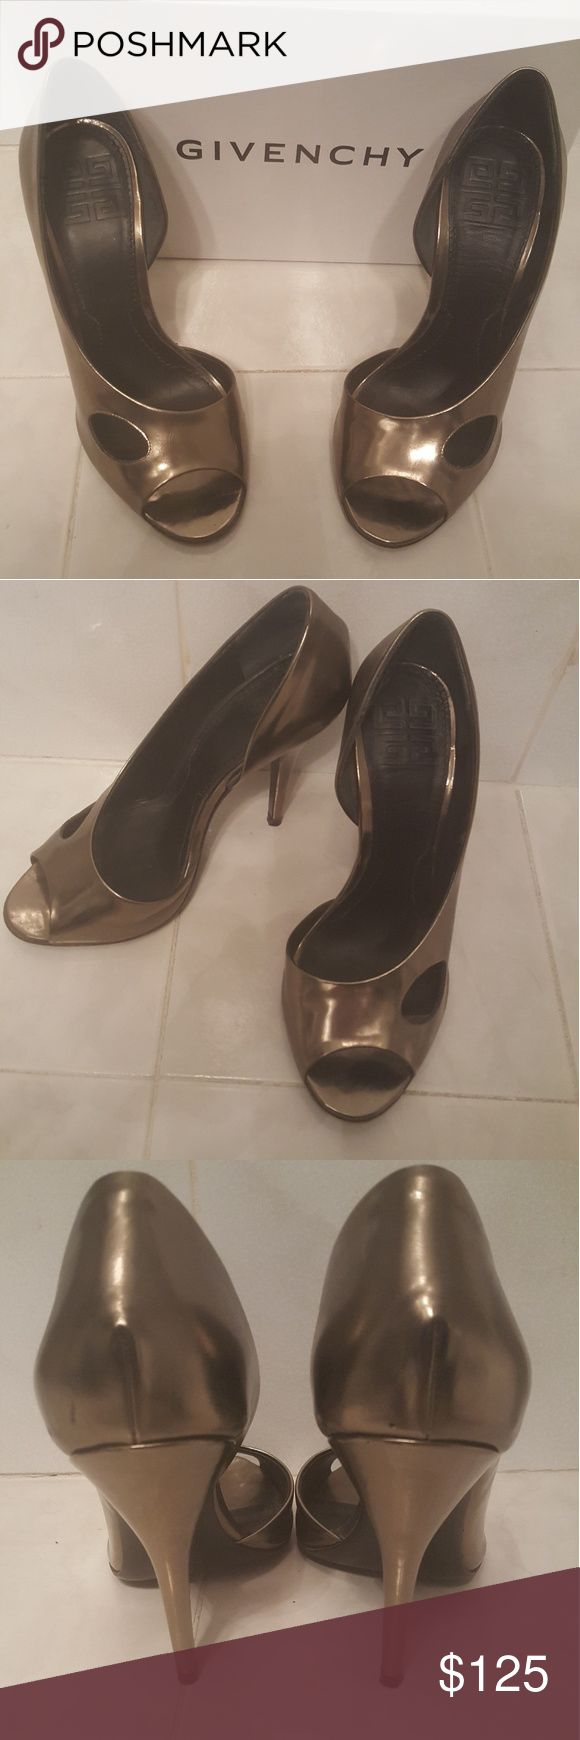 """Givenchy Gold Peep Toe Pumps Sz 7 Style name Garnette. 4 1/2"""" heel.  Gold Leather.   Size 7.  Excellent Condition.   Original Proce $440. Comes in Box. Givenchy Shoes Heels"""